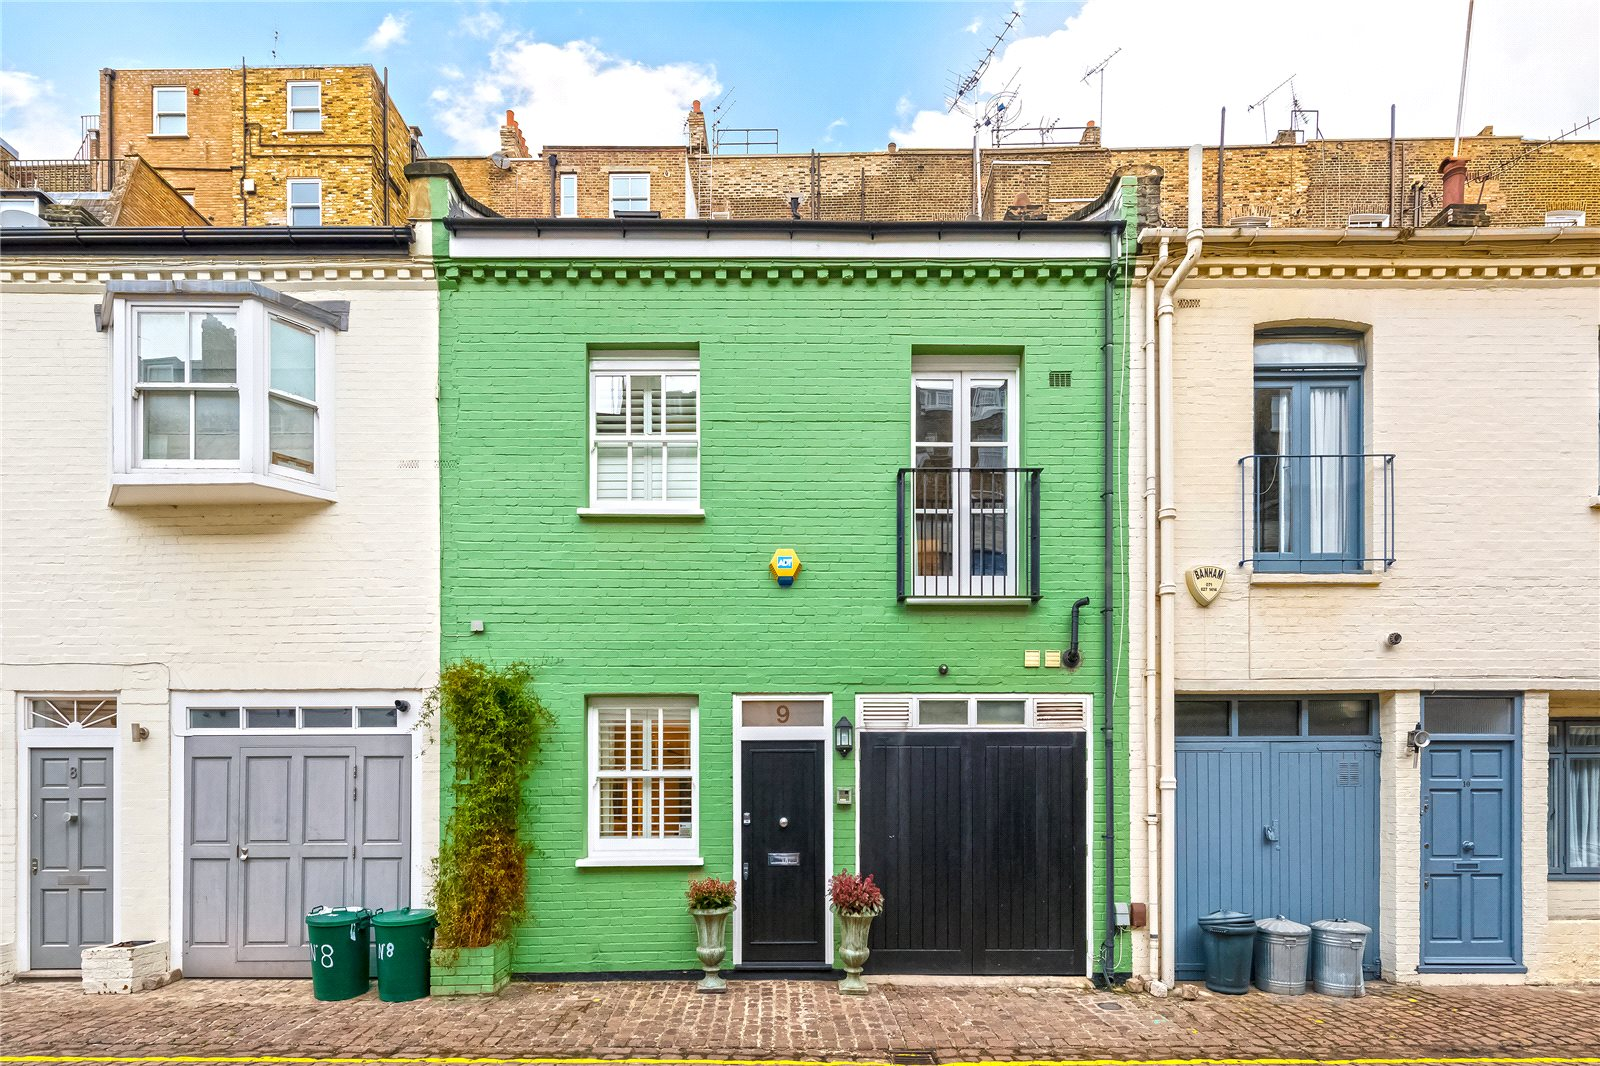 独户住宅 为 销售 在 Petersham Mews, South Kensington, London, SW7 South Kensington, London, 英格兰